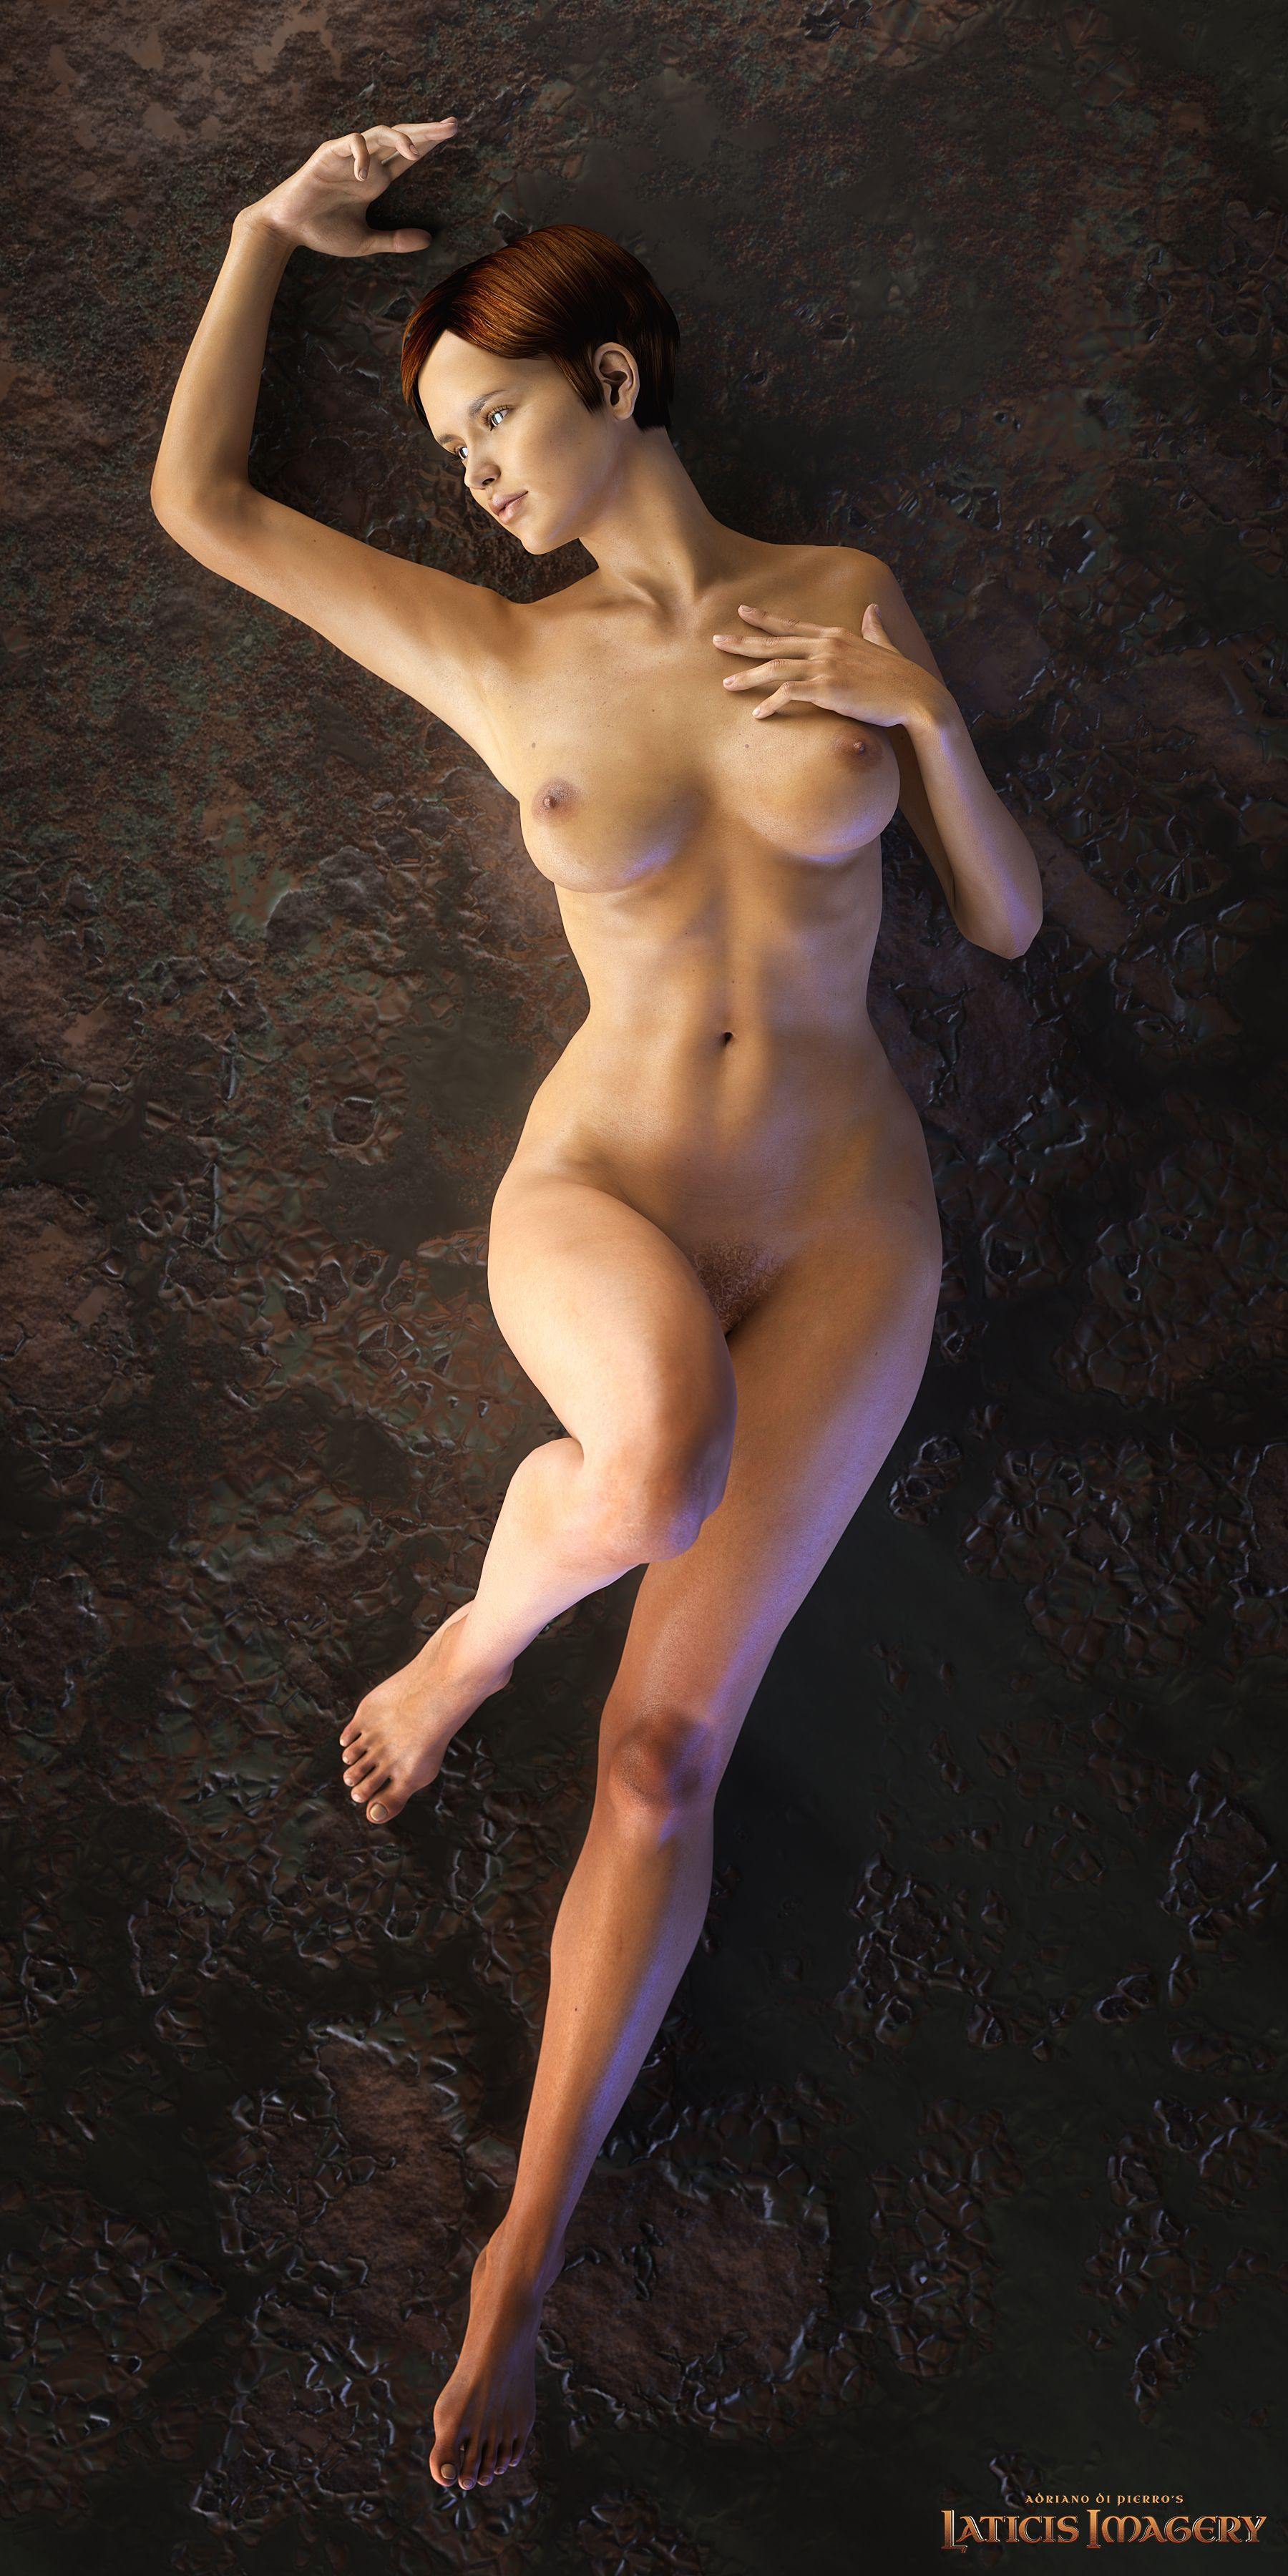 3D CG nude nude lying down full front 3d cg model